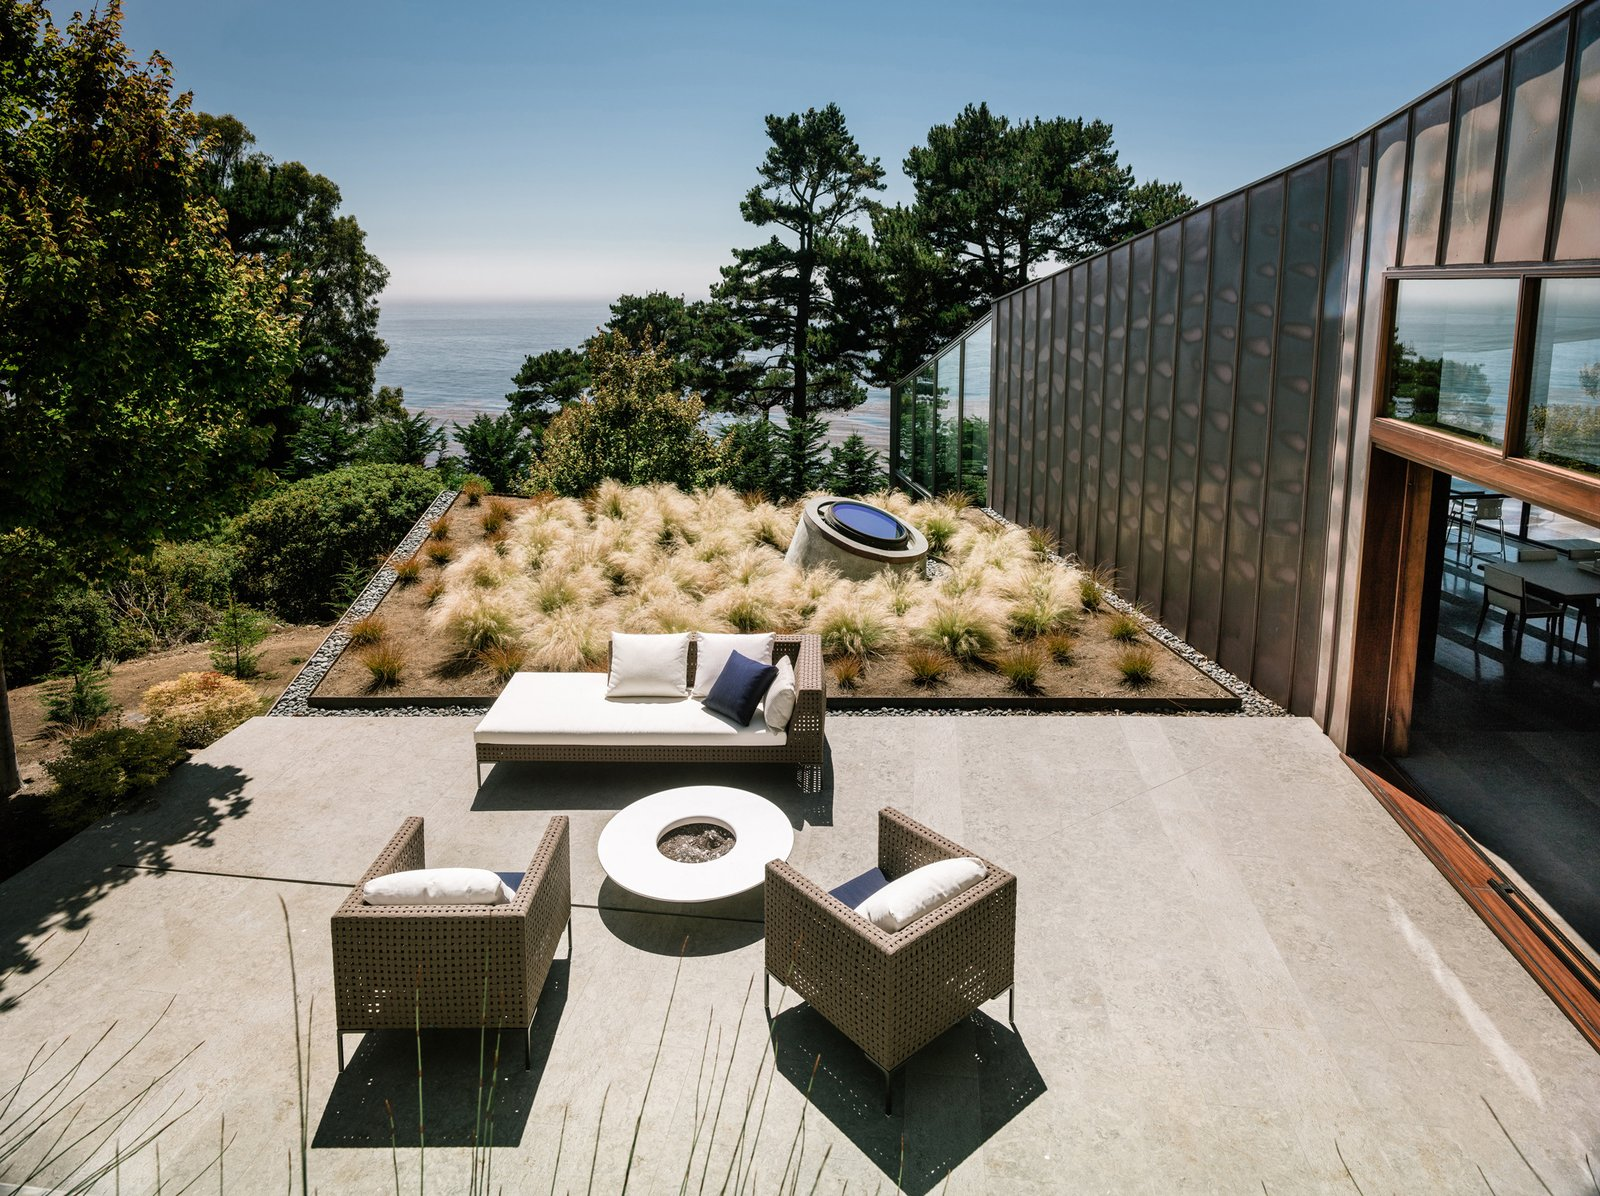 "Outdoor, Side Yard, Trees, Shrubs, Stone Patio, Porch, Deck, Landscape Lighting, Grass, Rooftop, and Concrete Patio, Porch, Deck ""The house's two main façades express both shelter and exposure. On the north, clear expanses of glass reveal ocean and coastline views; long strips of translucent channel glass dapple the light, playing on the sea's shimmering surface. The south façade, clad in copper, which wraps over the roof, is mostly enclosed, offering a retreat from the forces of nature. Roof overhangs on the east and west protect the windows and the front door from the harshness of sun and wind,  Photo 2 of 19 in 18 Modern Fireplaces and Fire Pits to Inspire Outdoor Living from Fall House"